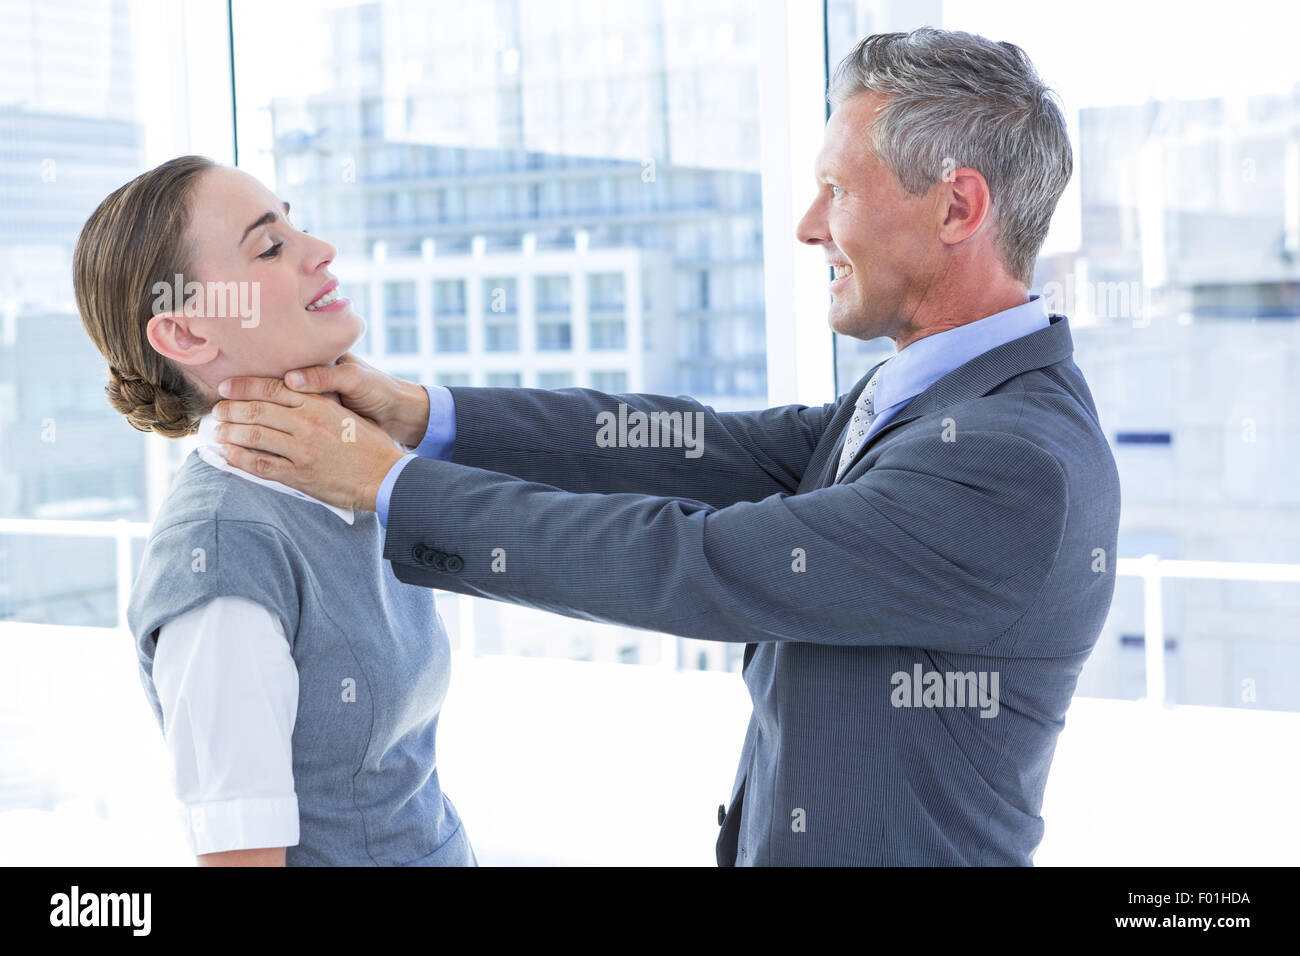 Businessman trying to smother his colleague - Stock Image